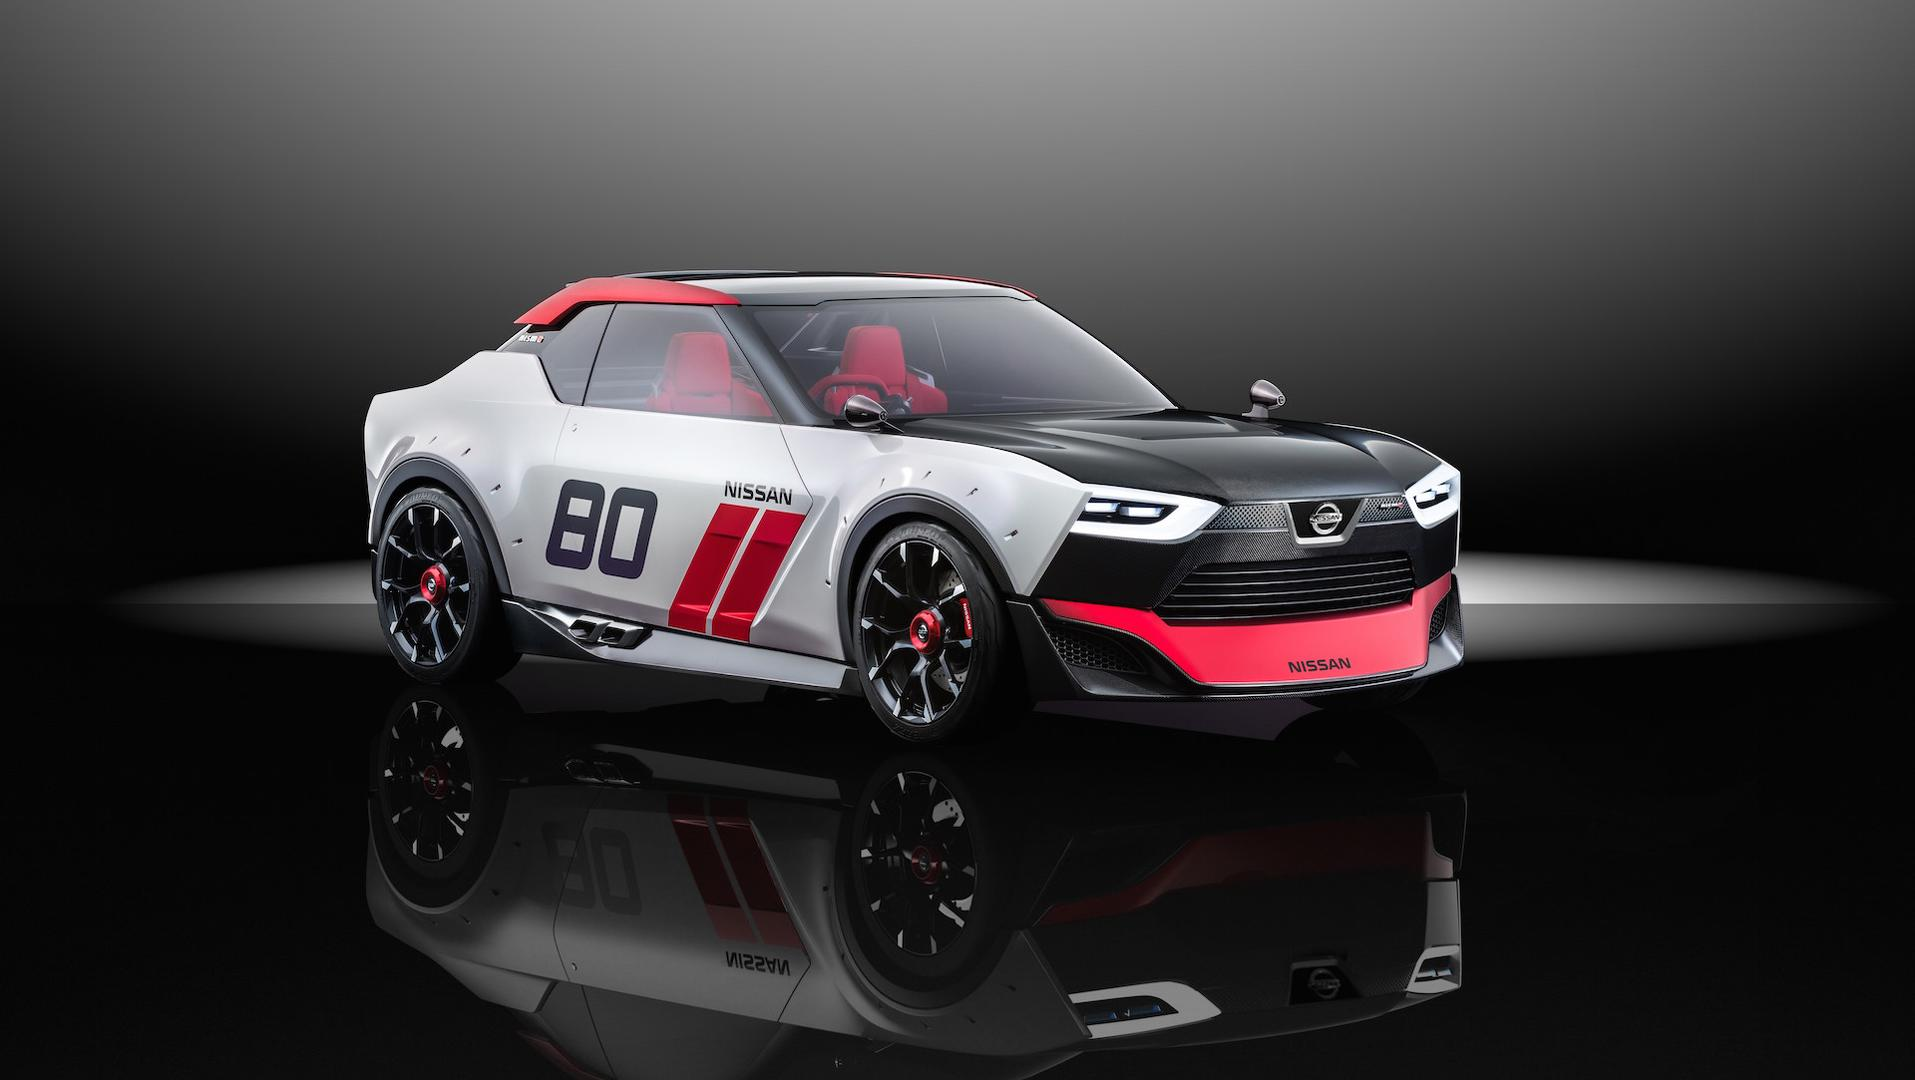 Nissan details why the cool IDx Nismo never made it to production